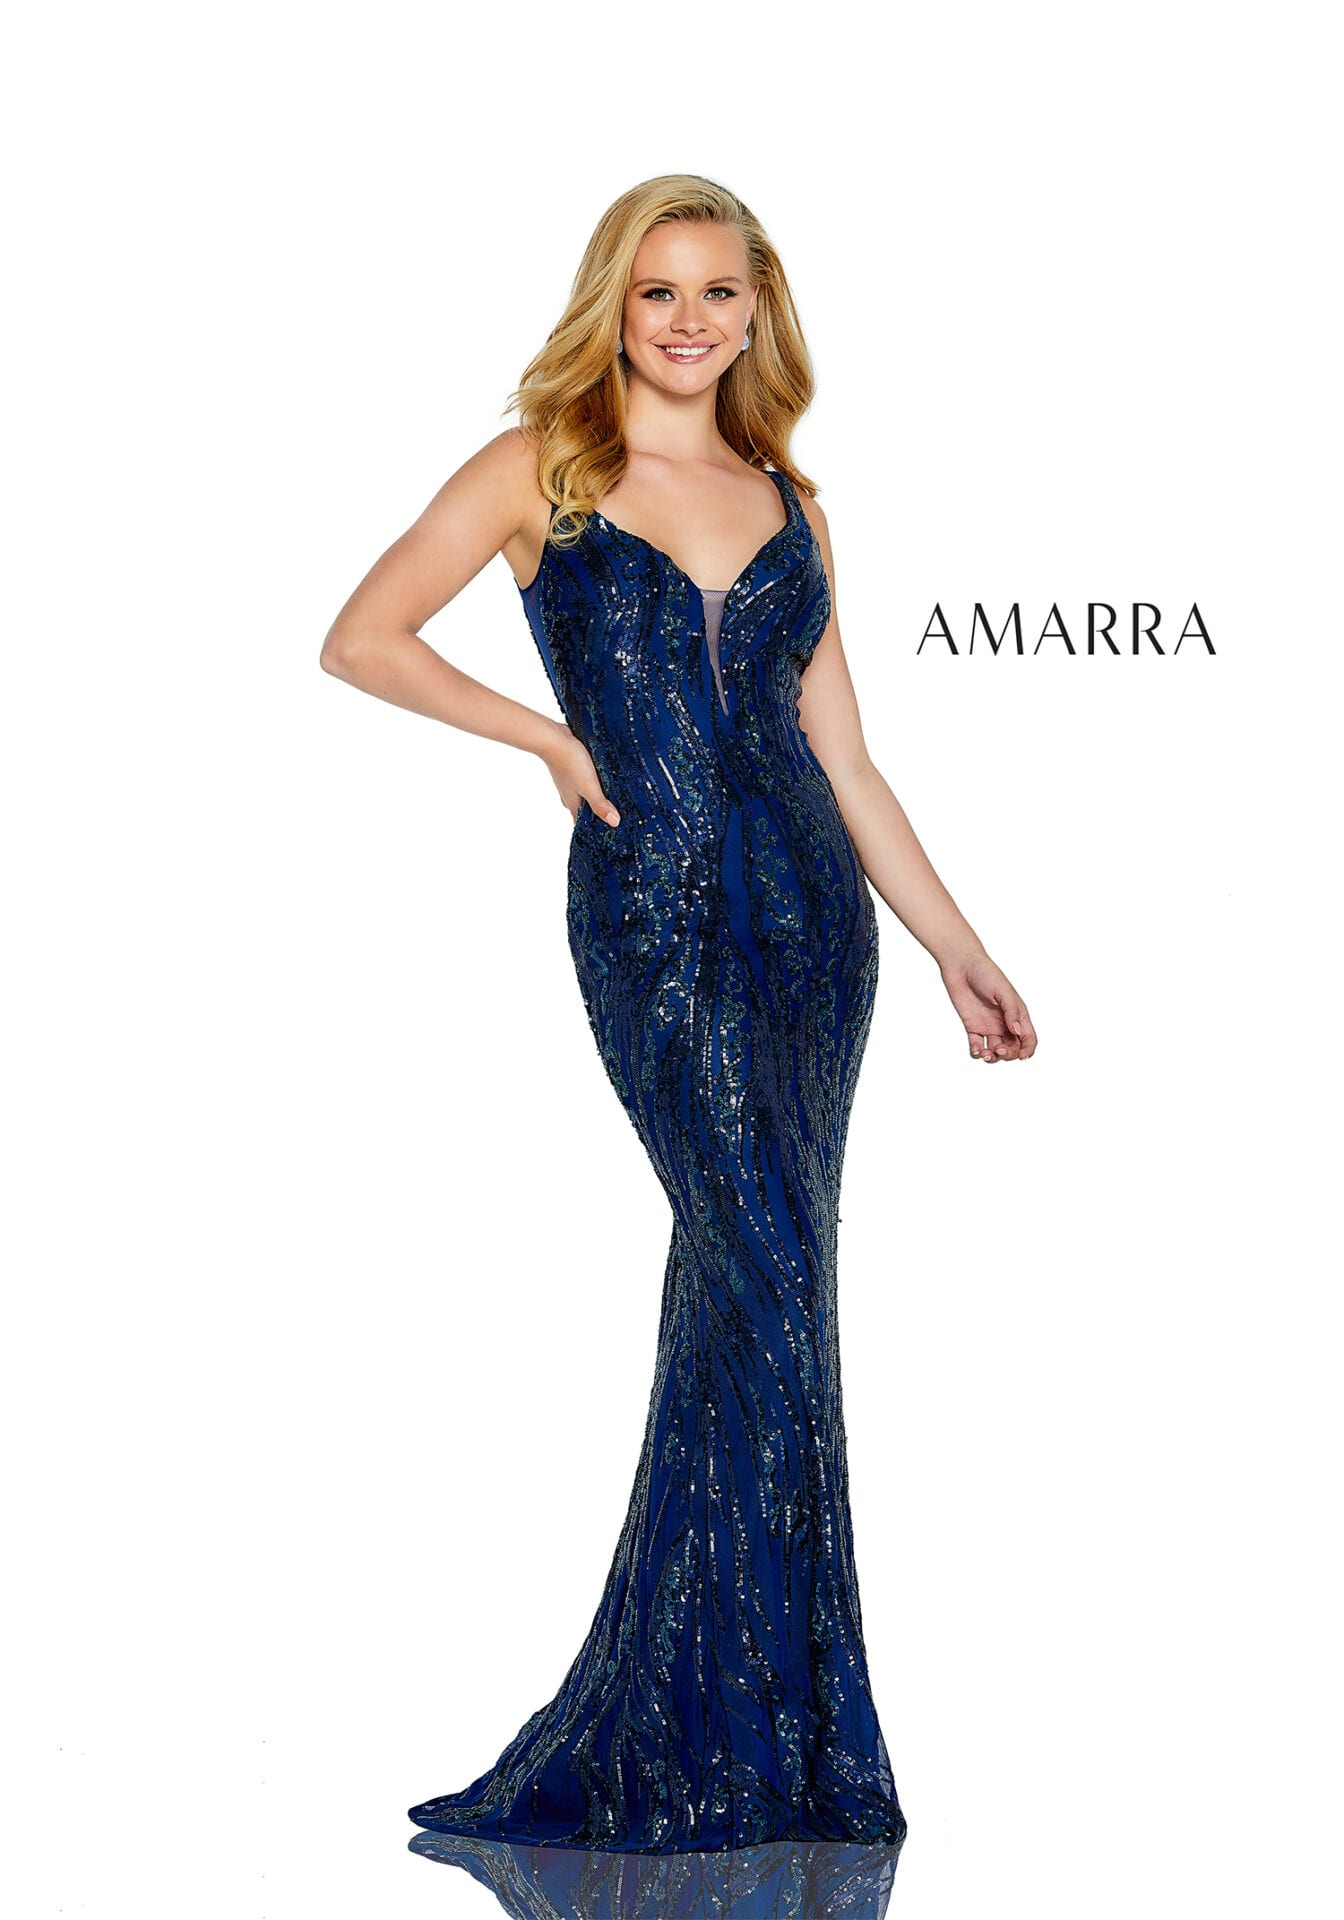 Fitted sequin gown with a plunging neckline with mesh insert and a strappy lace back.